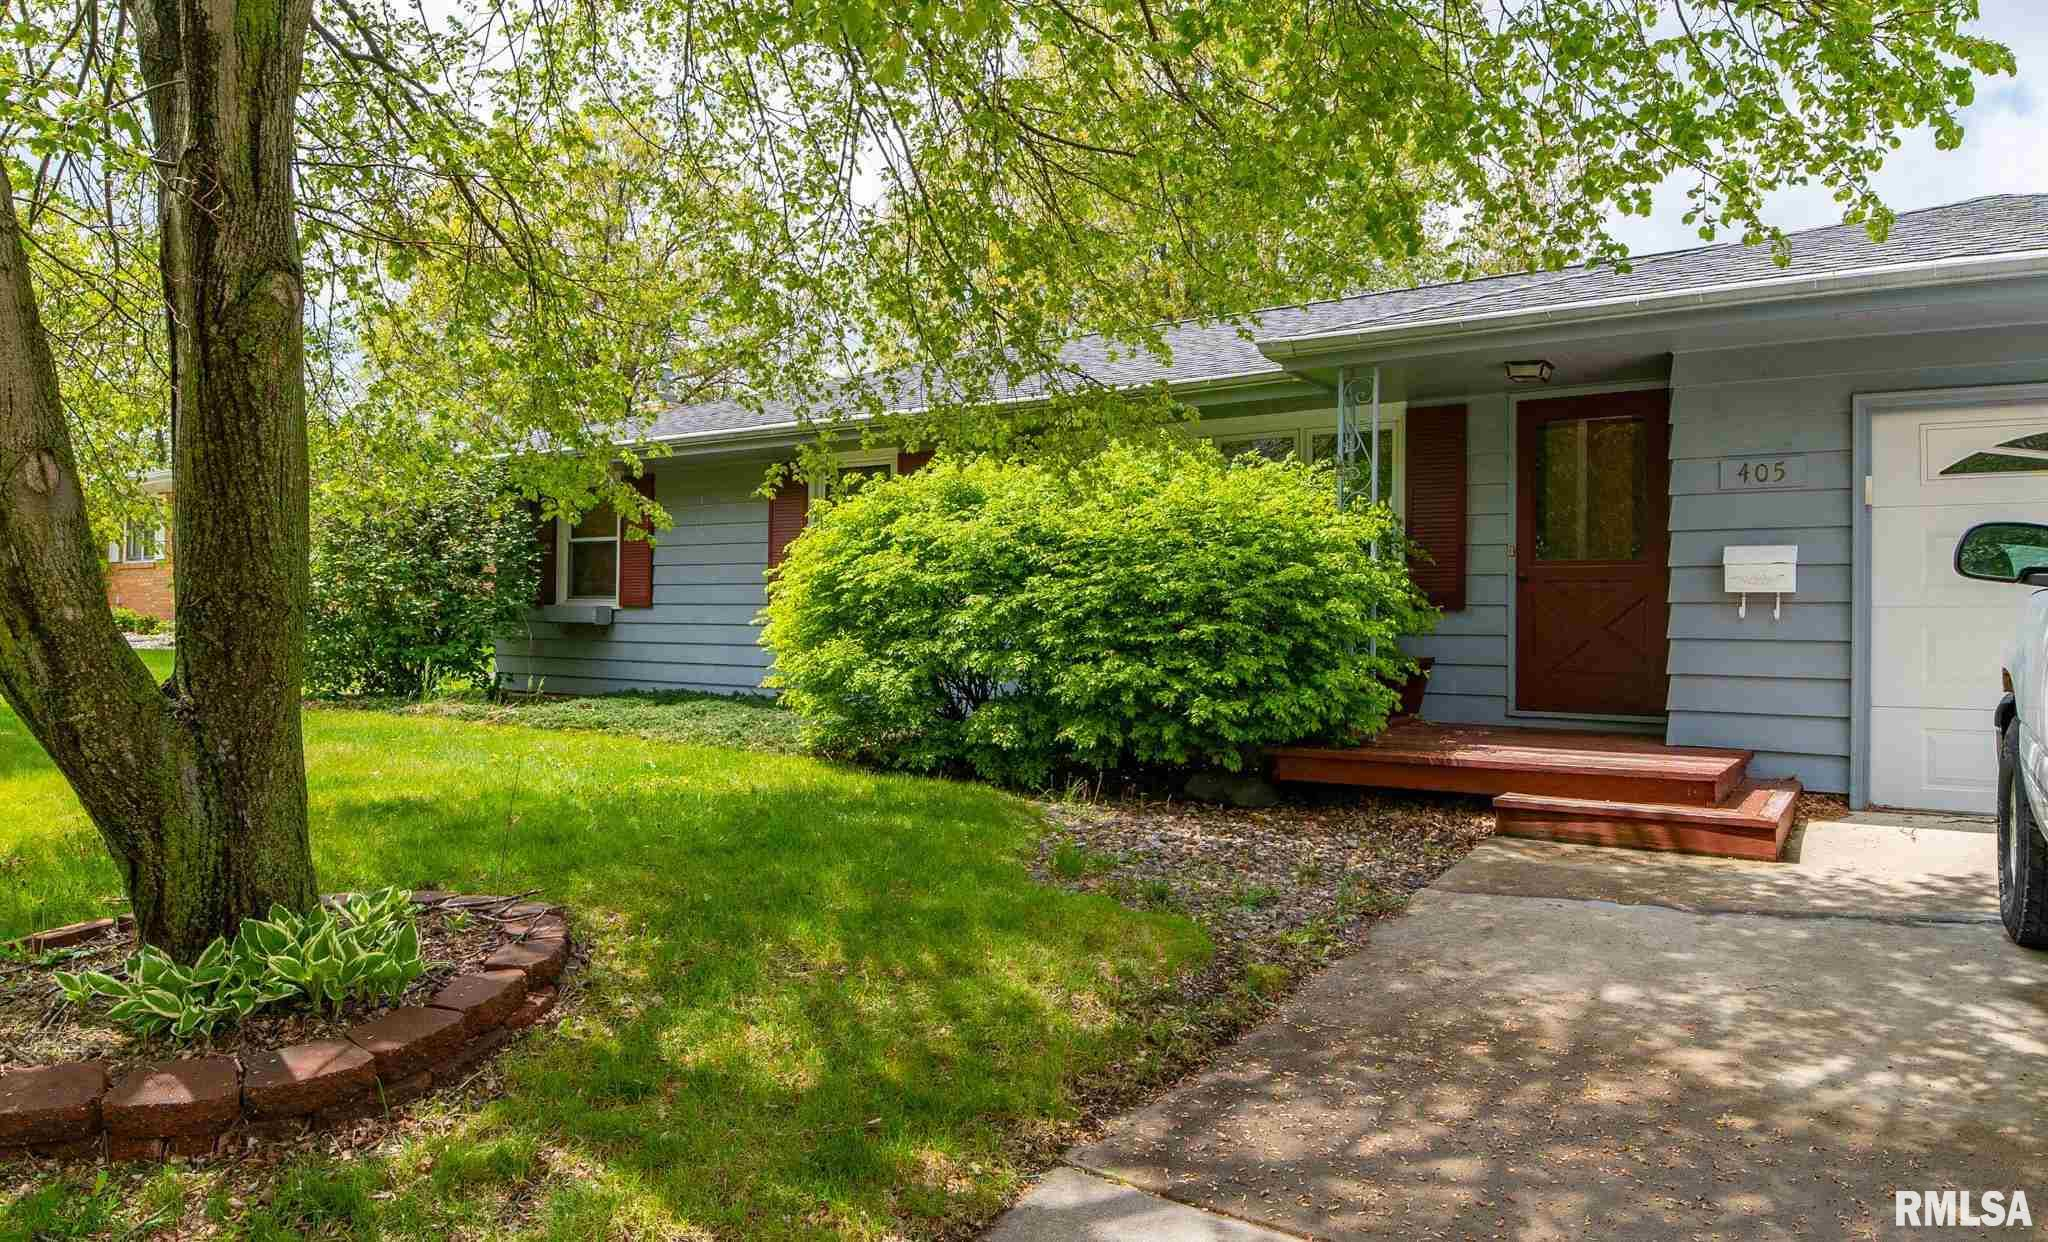 405 GRANDVIEW Property Photo - Normal, IL real estate listing